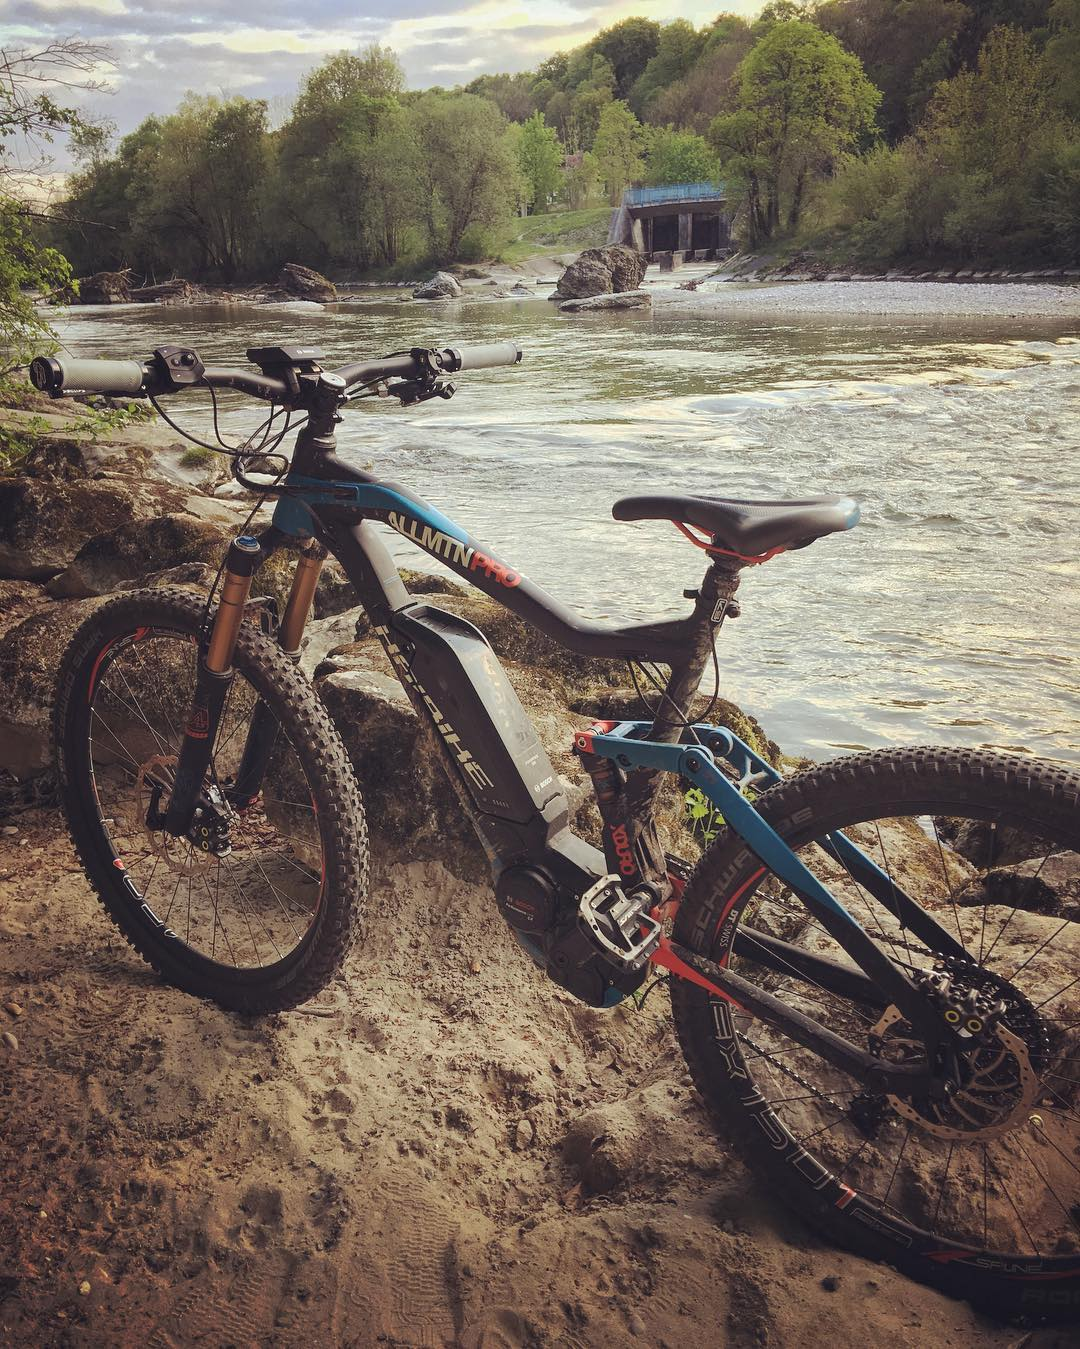 AllMtn and the river. #XDURO #Haibike #eperformance